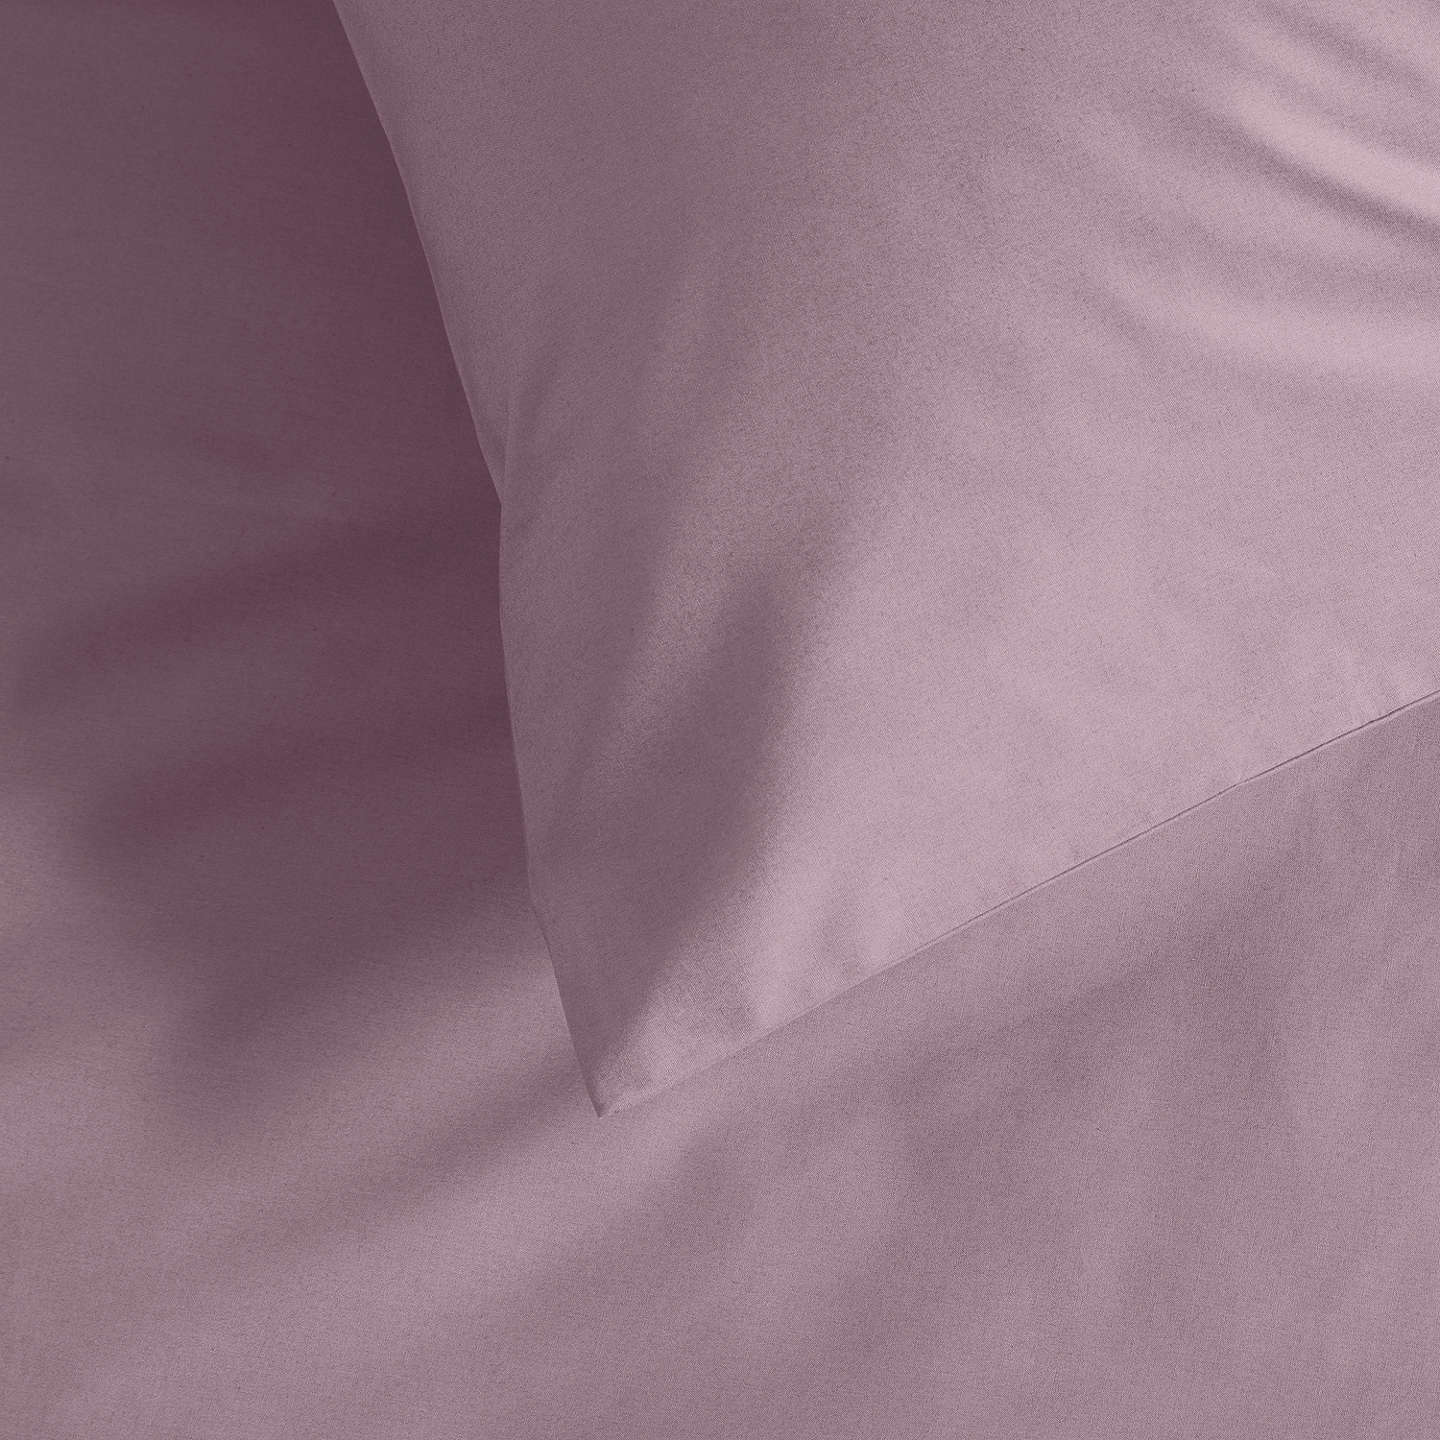 BuyJohn Lewis Perfectly Smooth 200 Thread Count Egyptian Cotton Standard Pillowcase, Amethyst Online at johnlewis.com